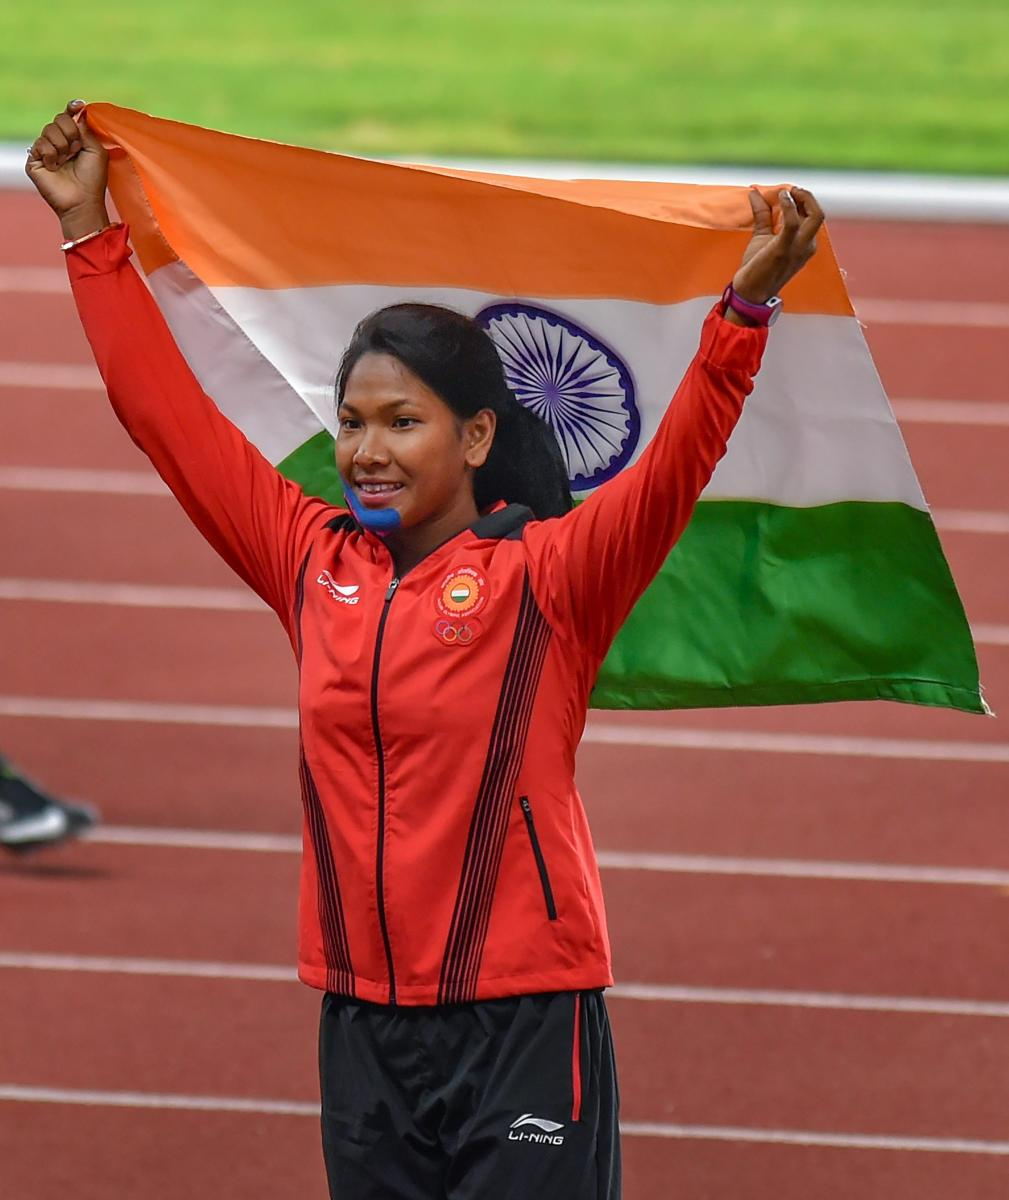 Sawpna Barman's heptathlon gold helped India swell their medals tally at the Asian Games. PTI